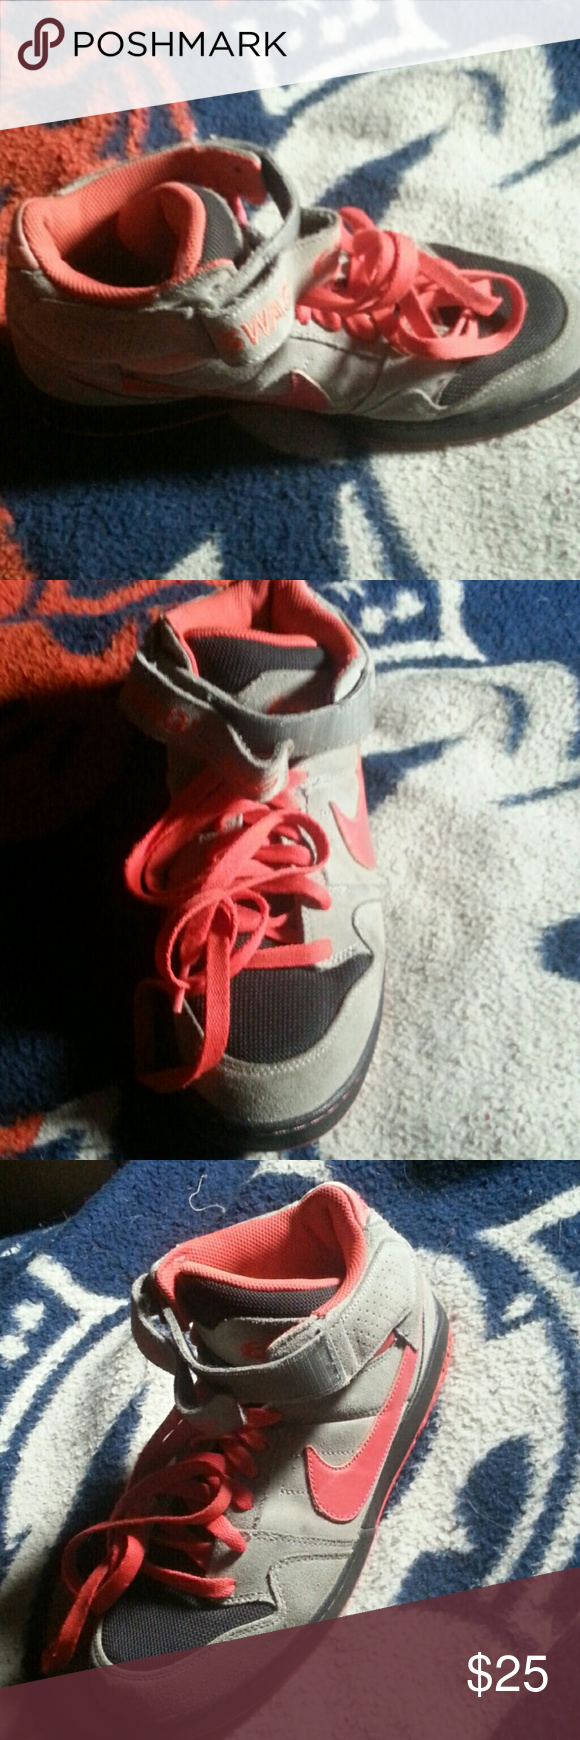 098932801a7d99 Nike ID 6.0 Swag US 9.0 Left Shoe ONLY Nike ID 6.0 Swag US 9.0 Left Shoe  ONLY